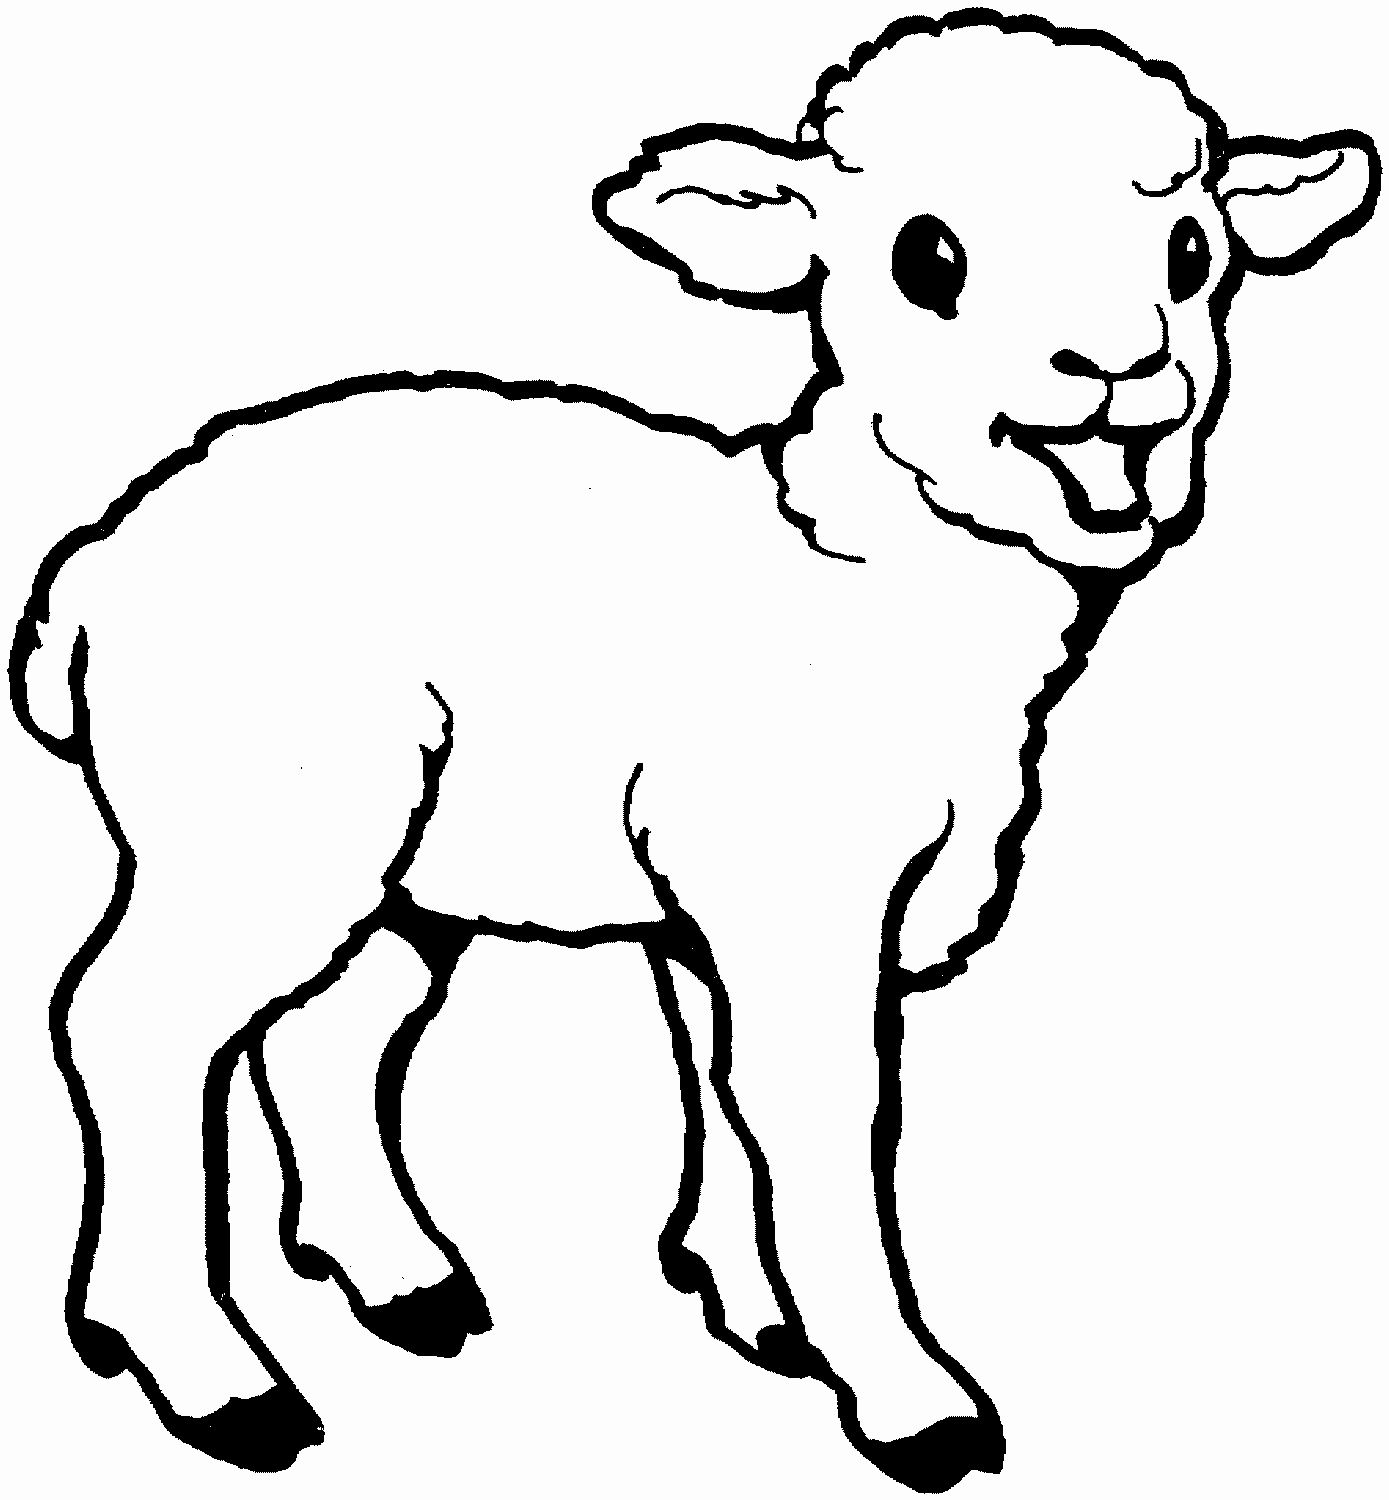 Coloring Pages Animals Goat Beautiful Halloween Witch Pictures To Color Farm Animal Coloring Pages Animal Coloring Pages Horse Coloring Pages